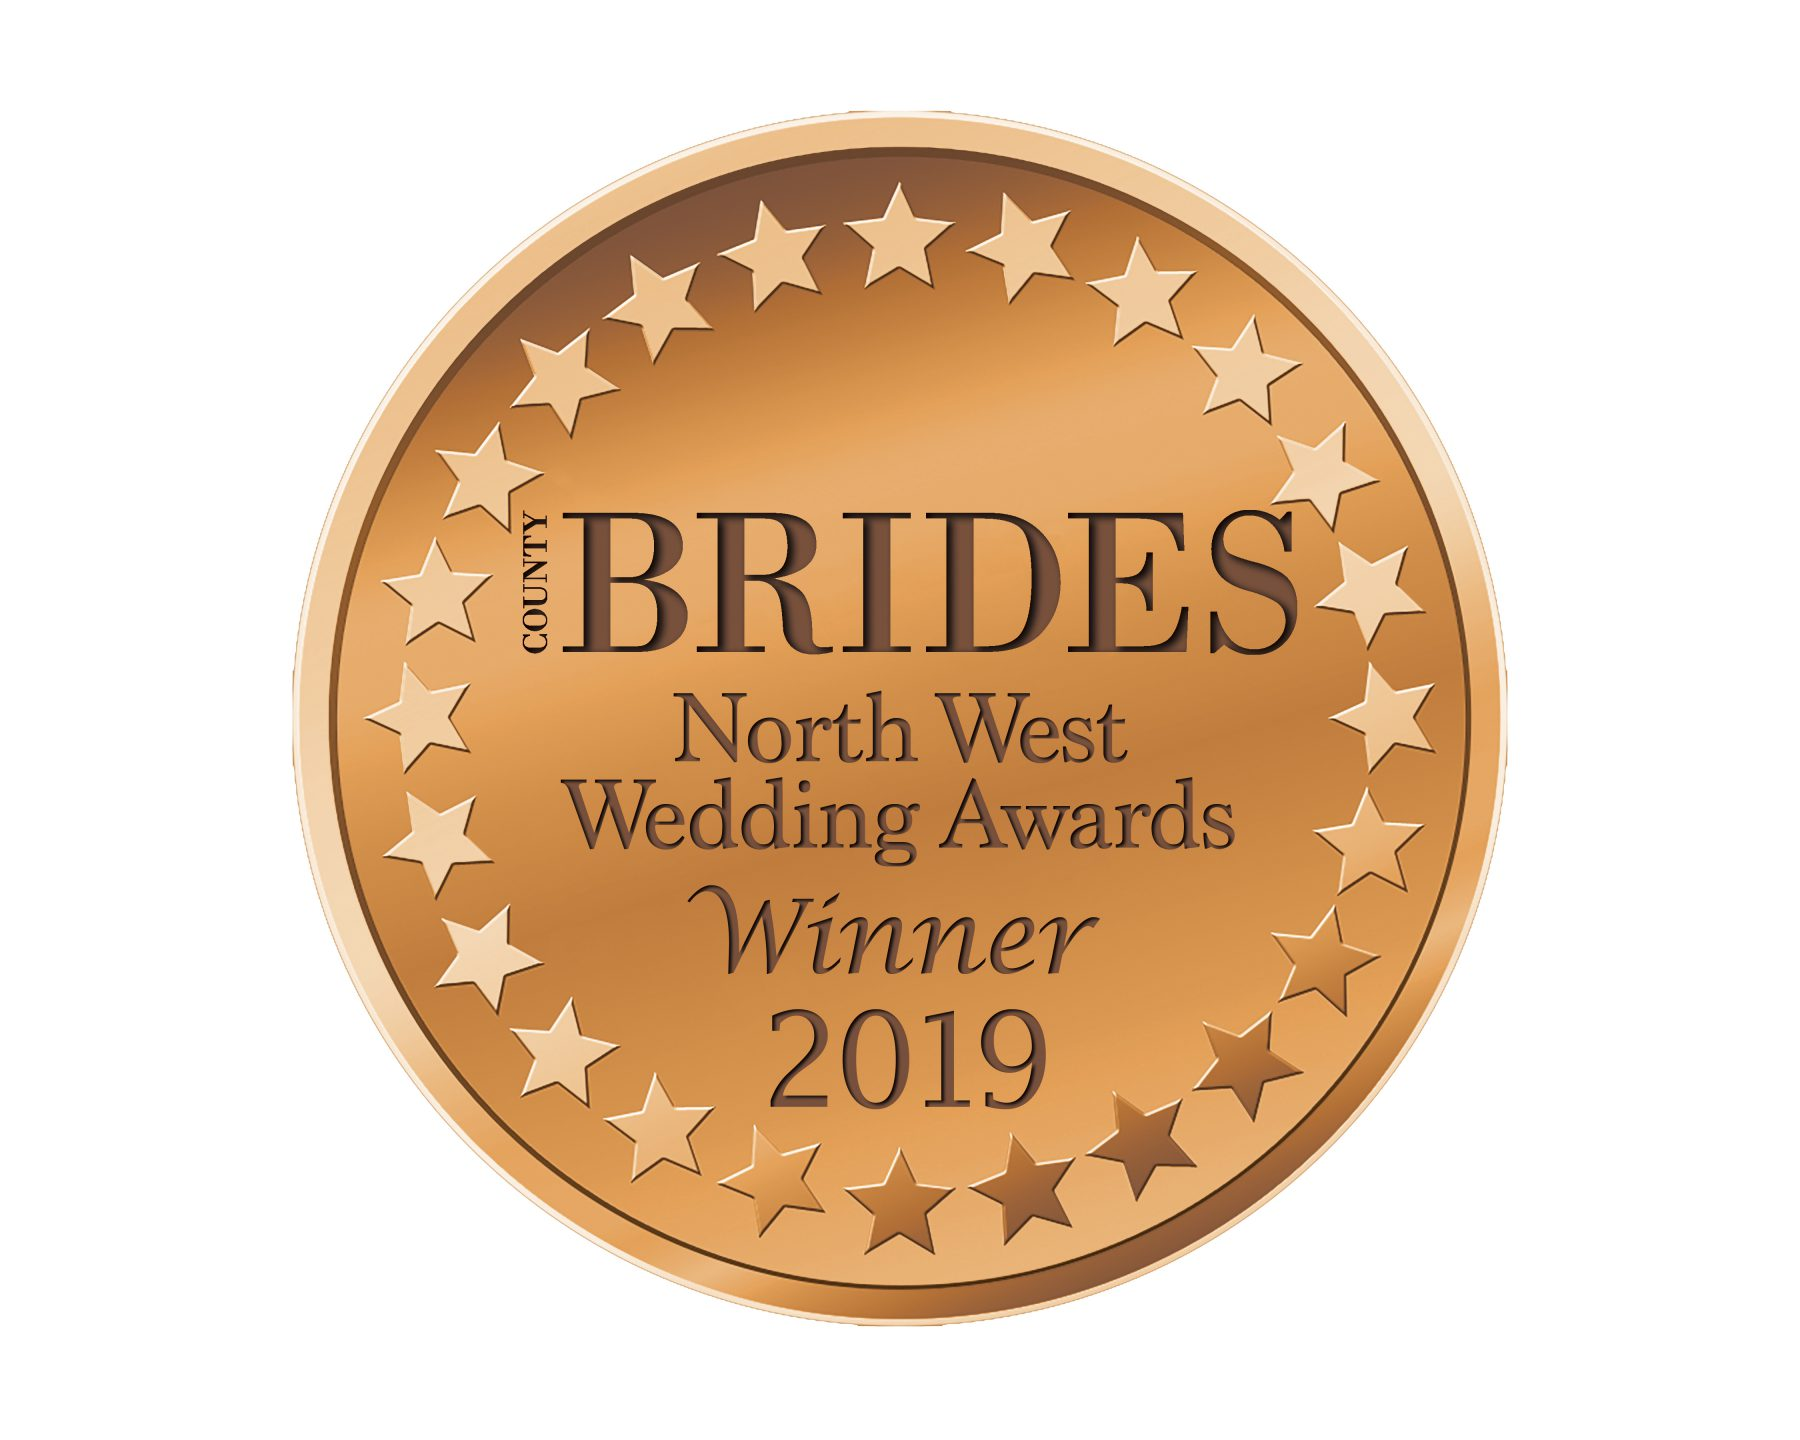 County brides winners logo